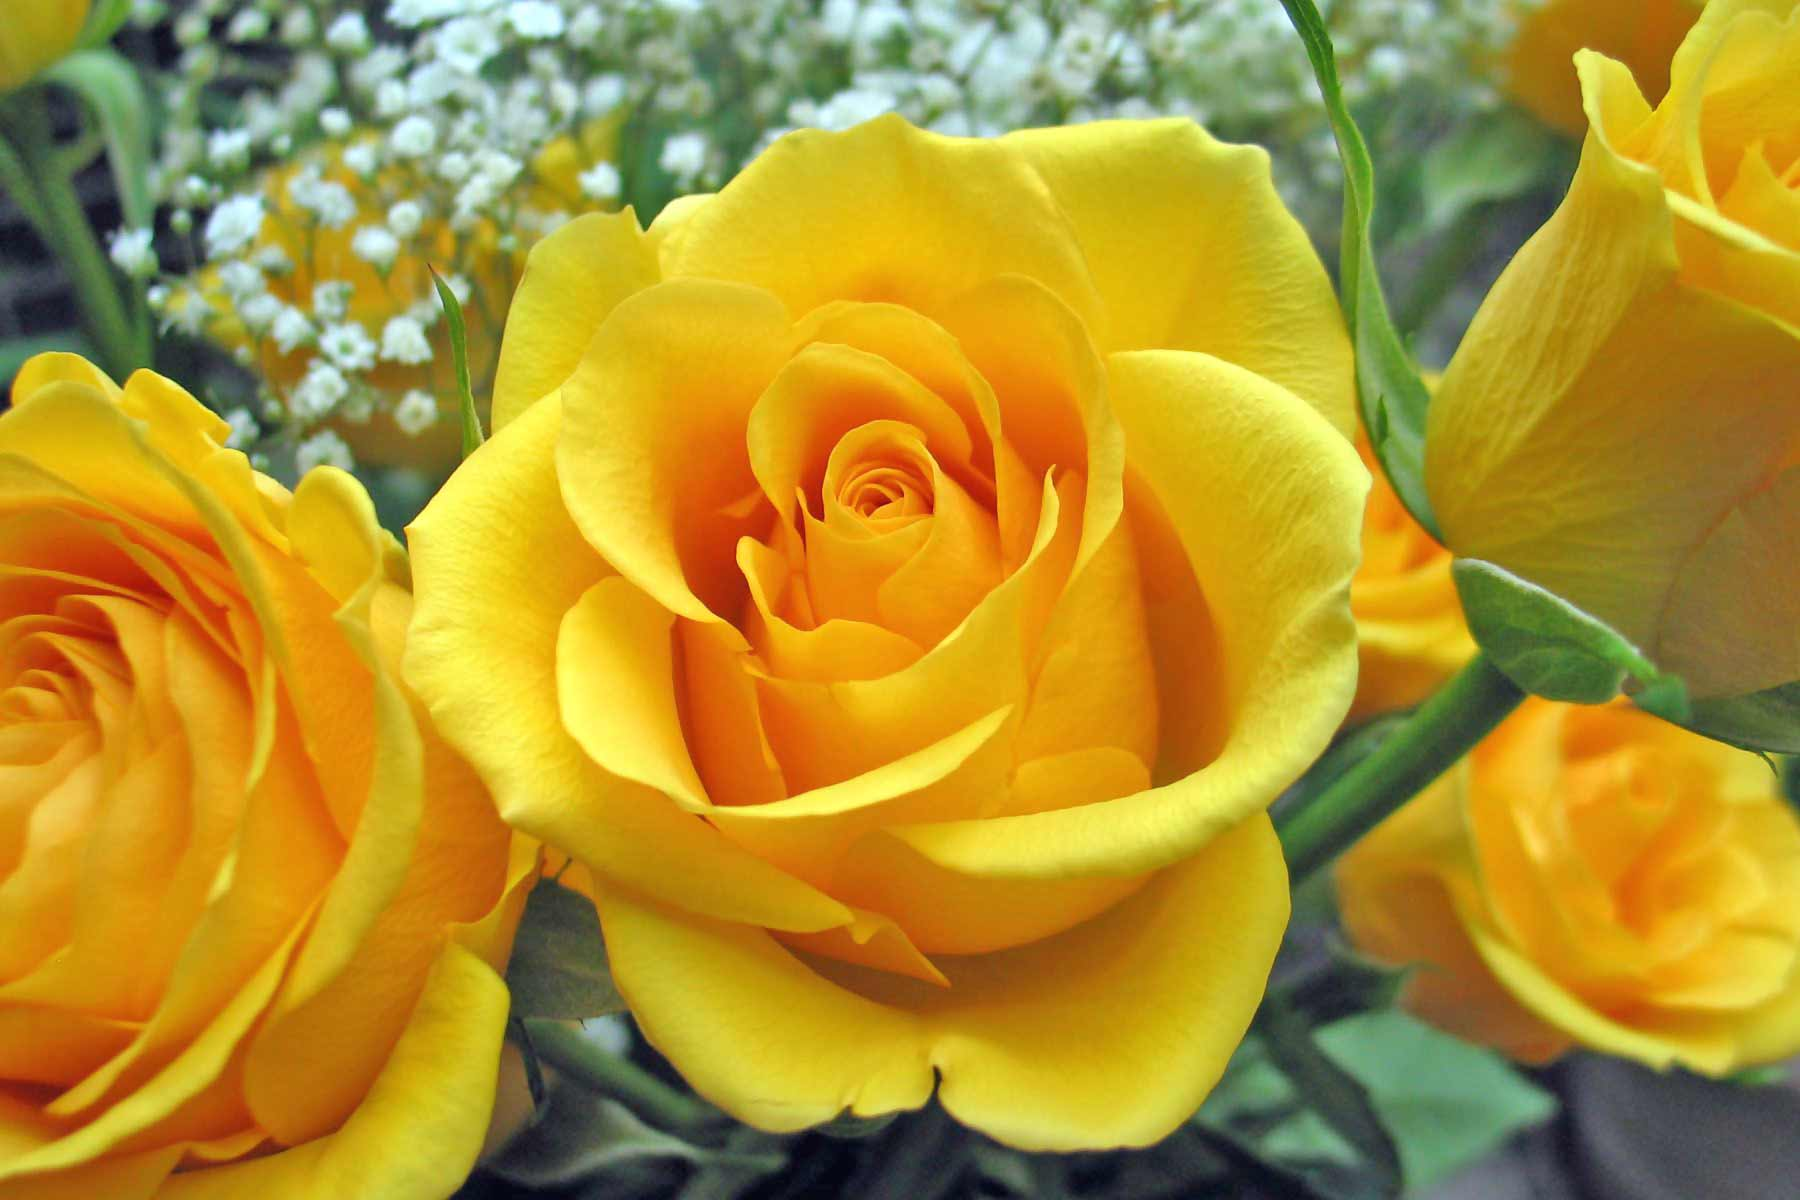 http://www.theflowerexpert.com/media/images/aboutflowers/flowermeanings/roseflowermeanings/single-yellow-rose.jpg